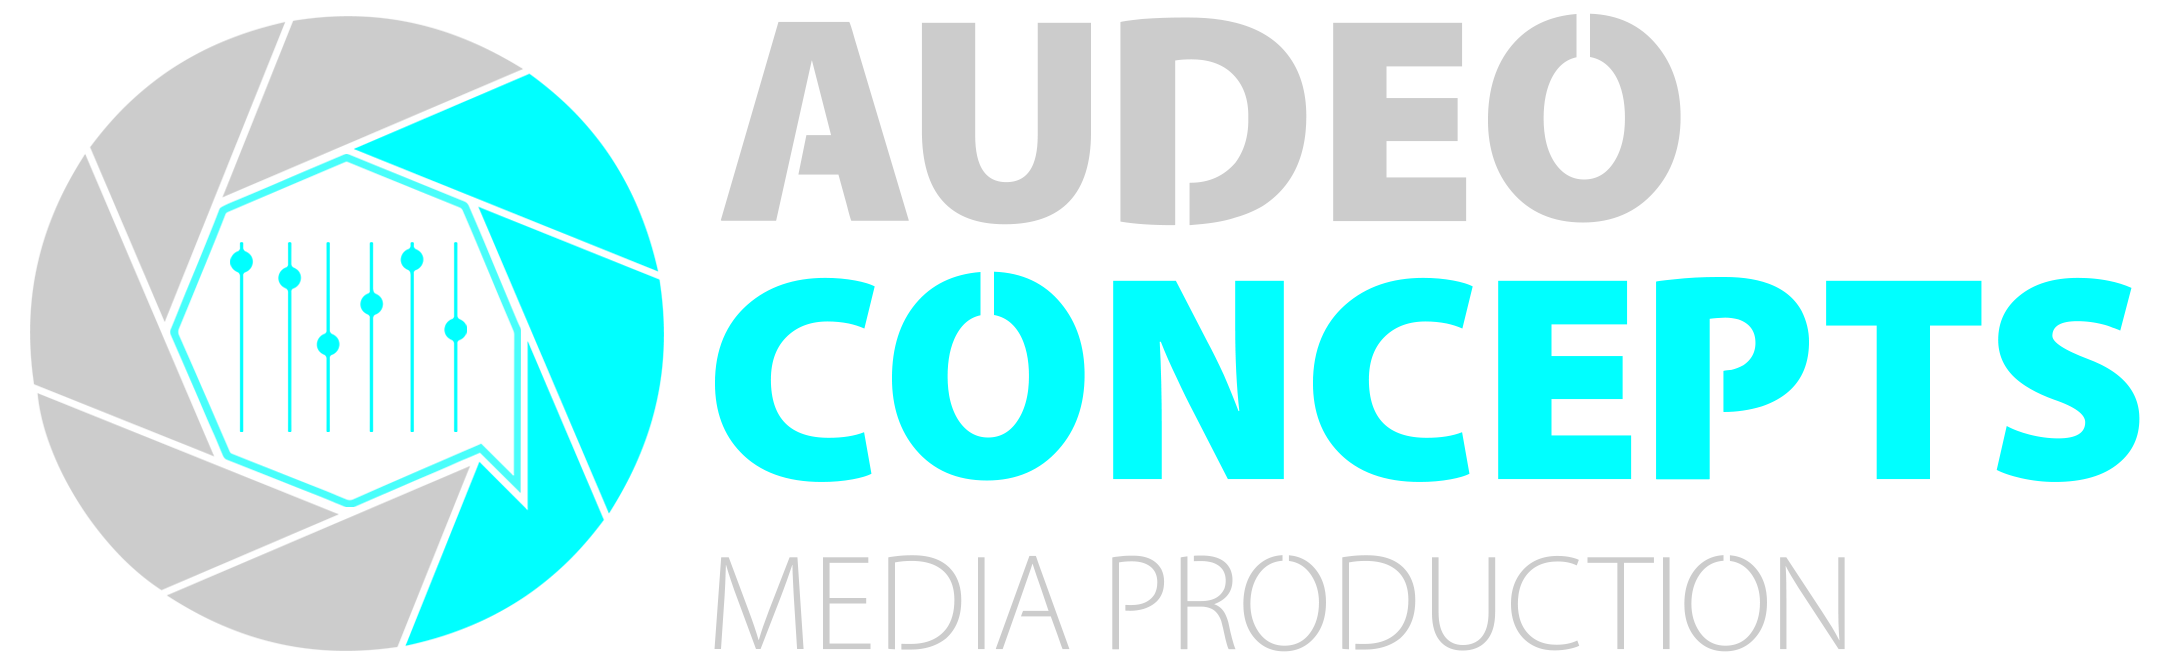 Audeo Concepts - Media Production